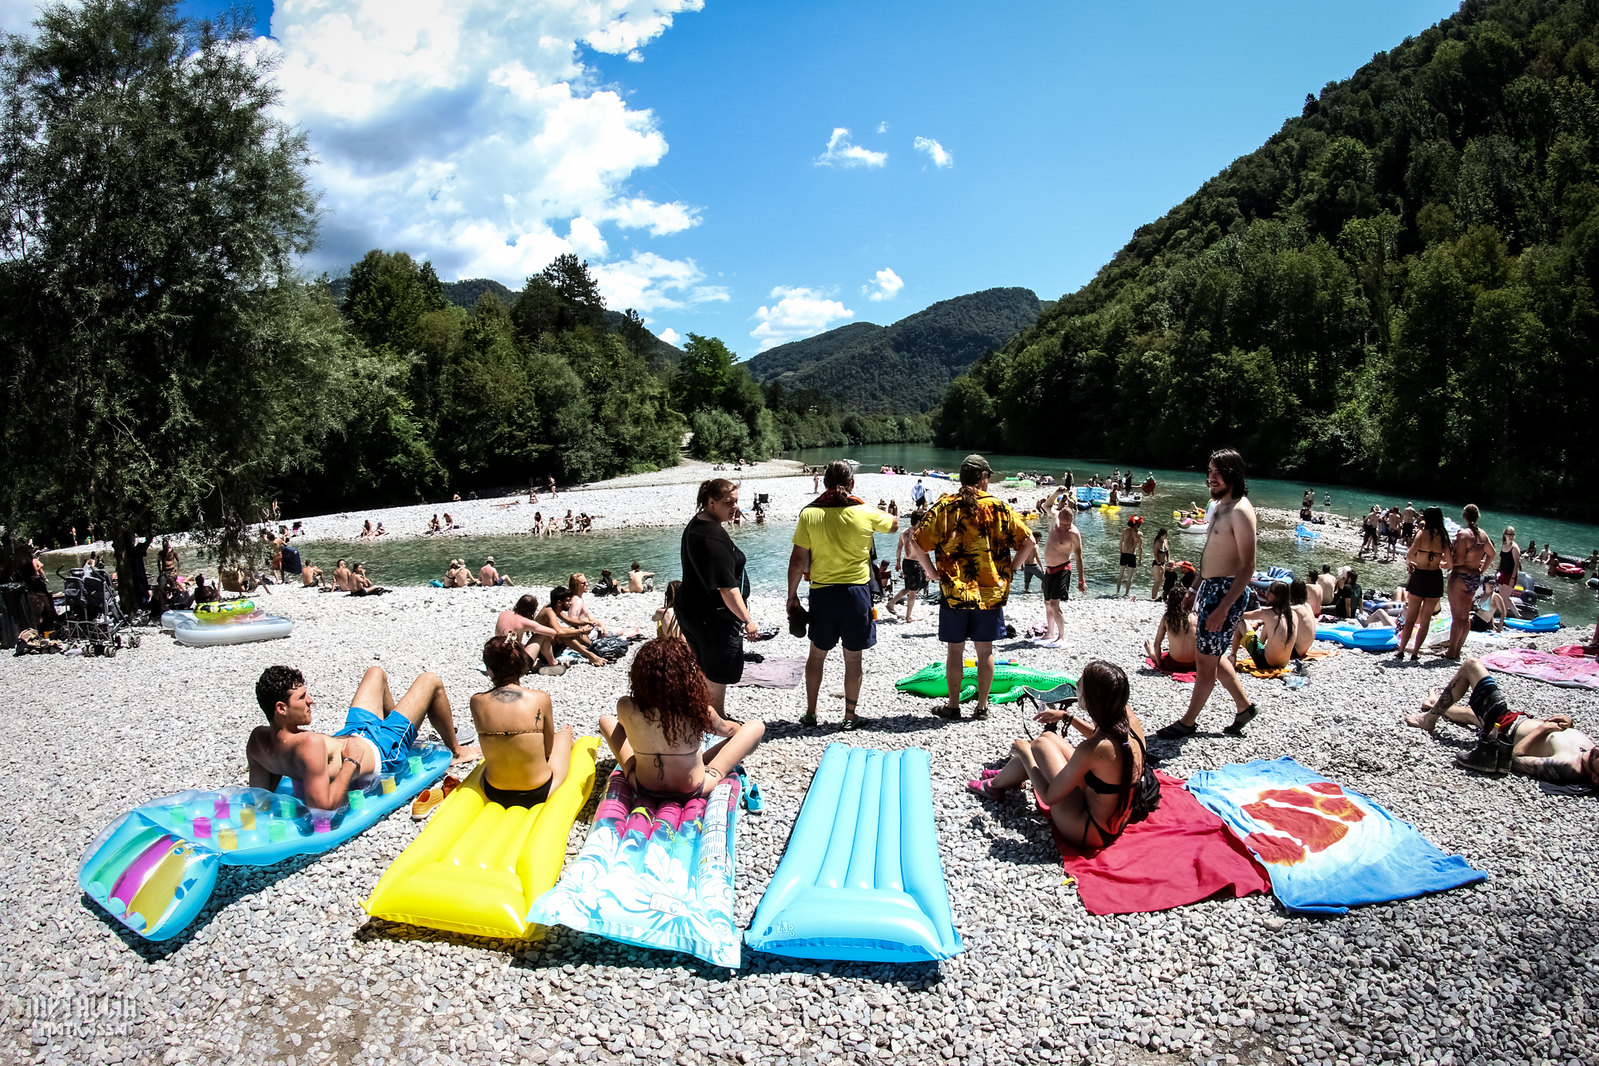 metaldays 2016, metaldays, metalcamp, metal festival, tolmin, soca river